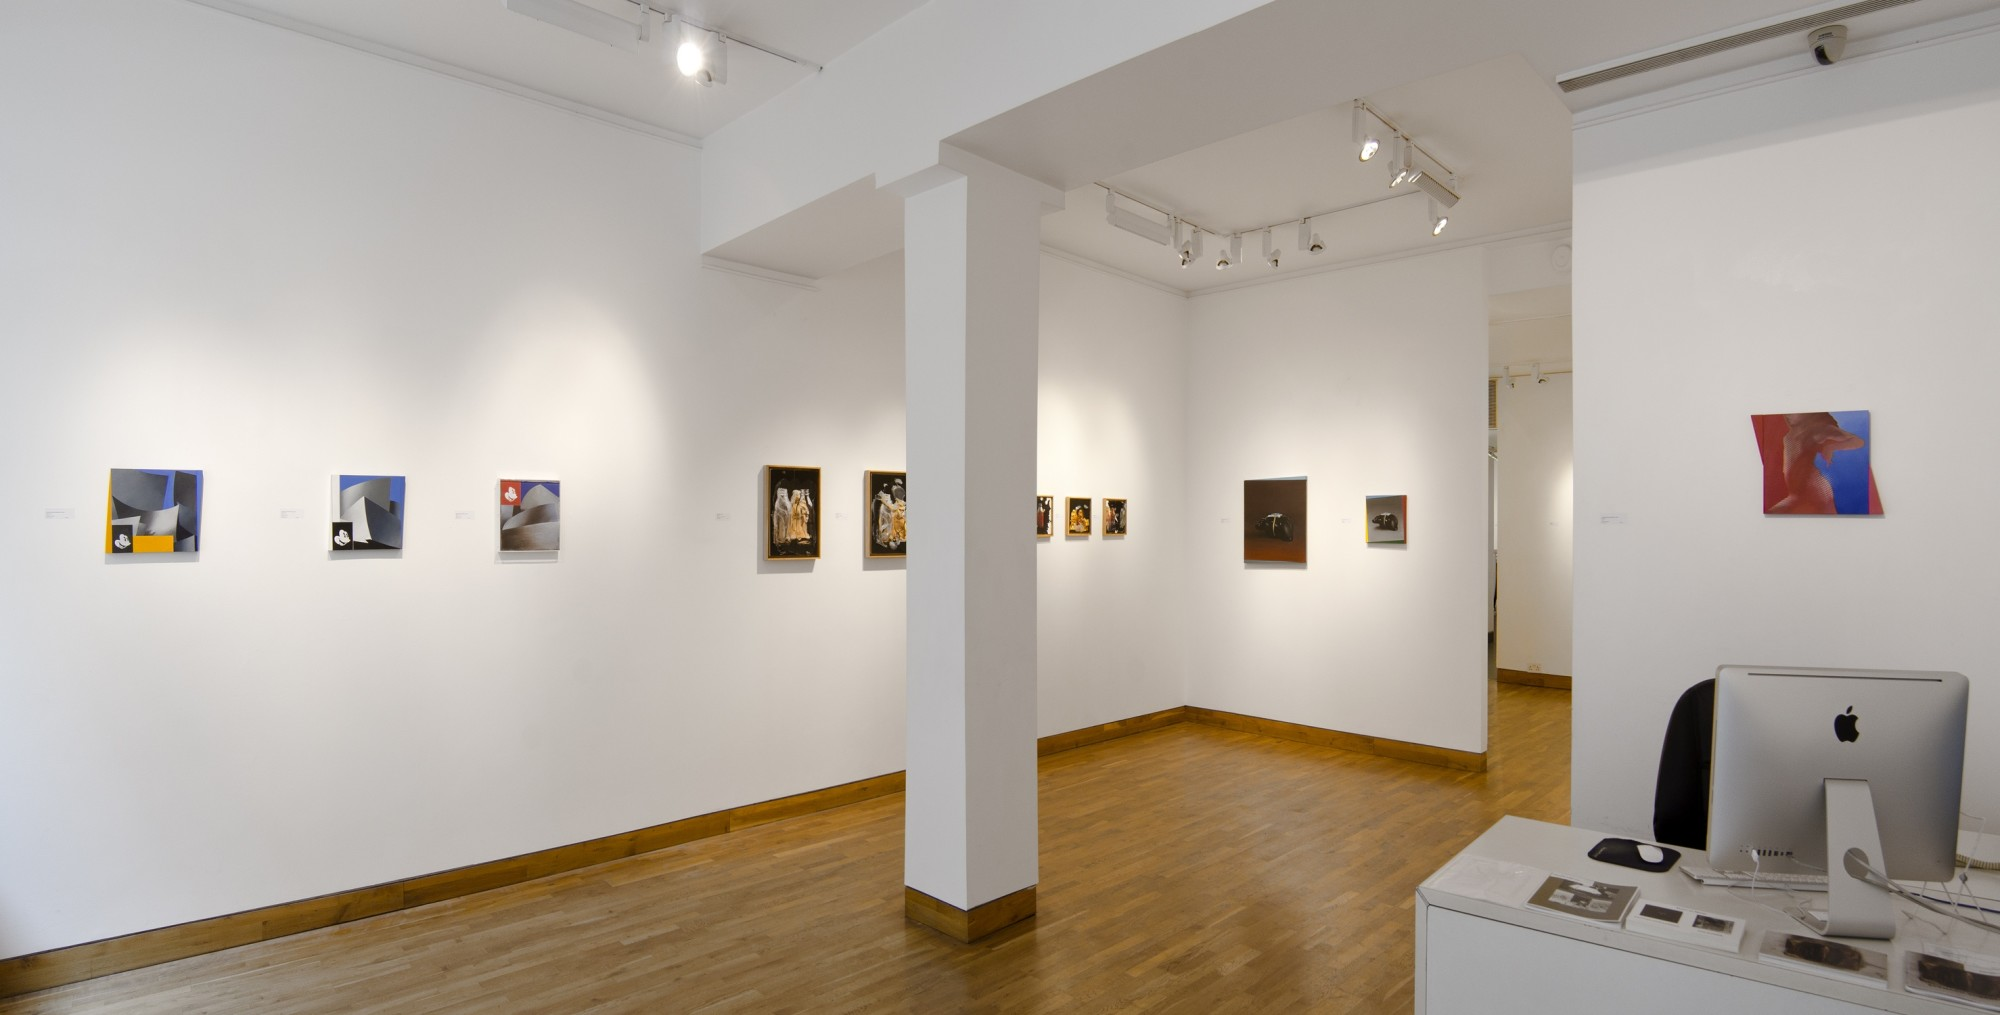 """<span class=""""link fancybox-details-link""""><a href=""""/exhibitions/70/works/image_standalone174/"""">View Detail Page</a></span><p>ANTONY DONALDSON & JOE GOODE 